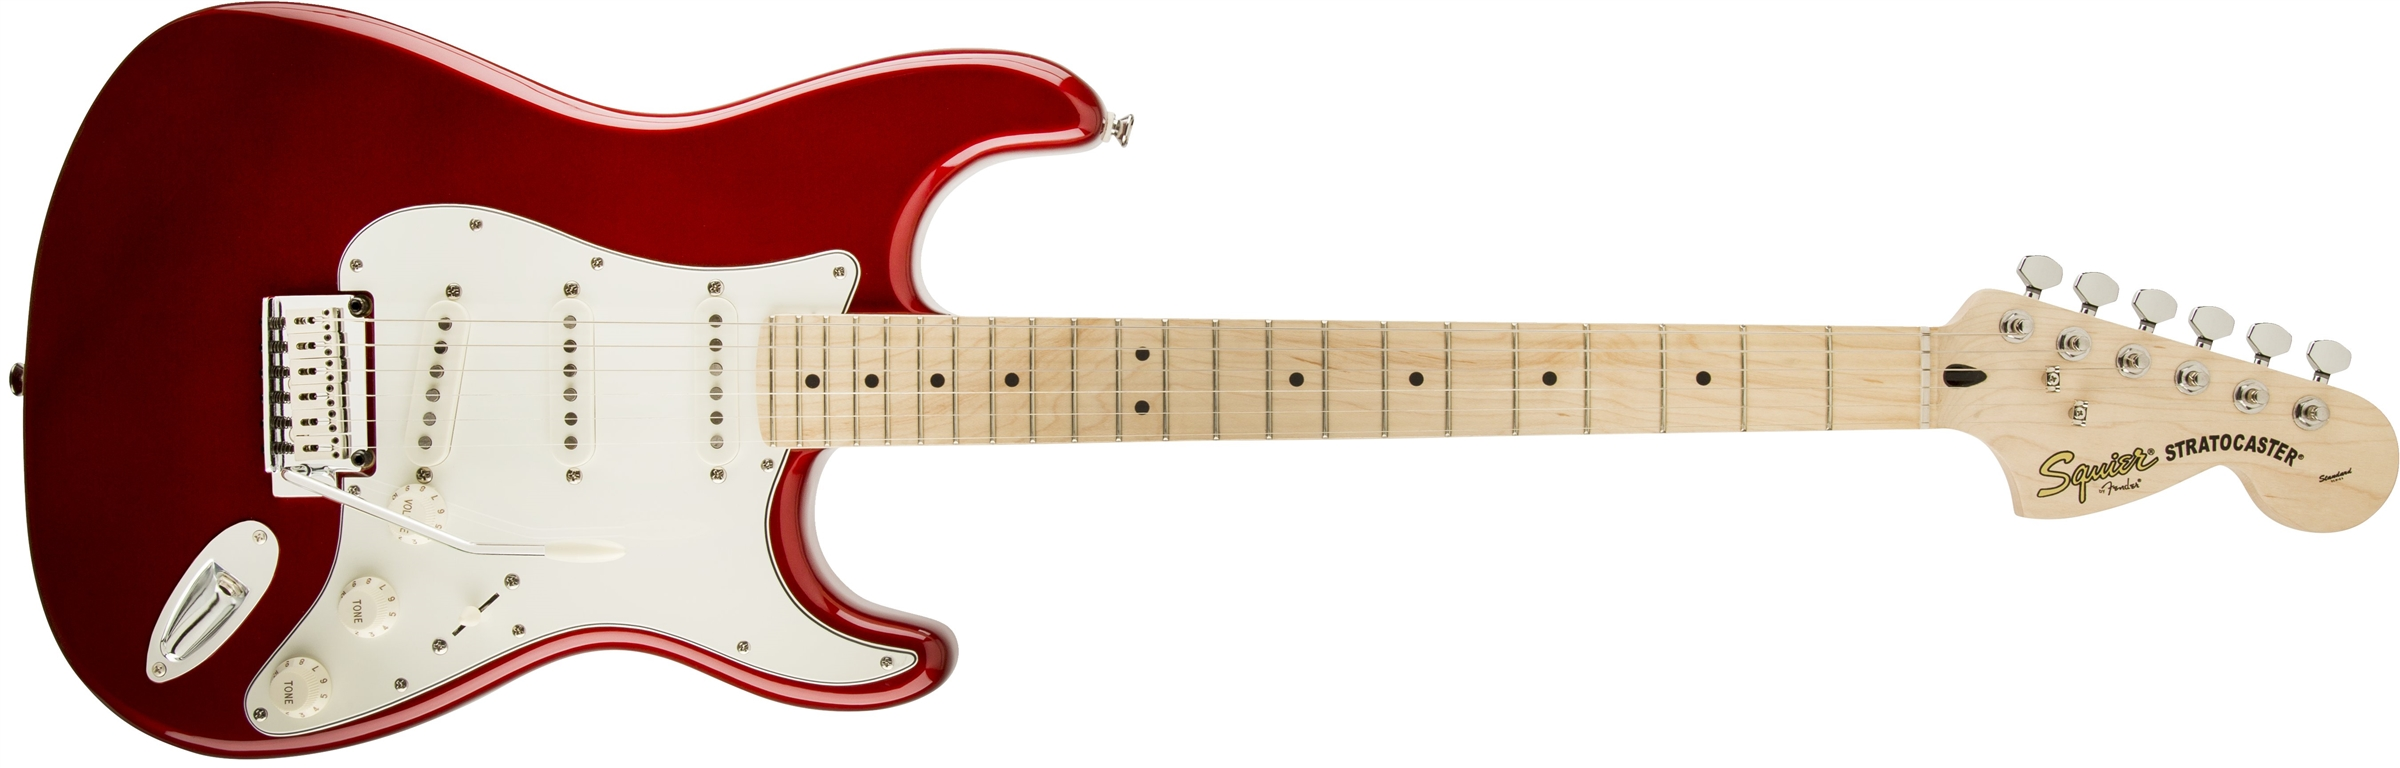 squier standard stratocaster maple fingerboard candy apple red squier electric guitars. Black Bedroom Furniture Sets. Home Design Ideas